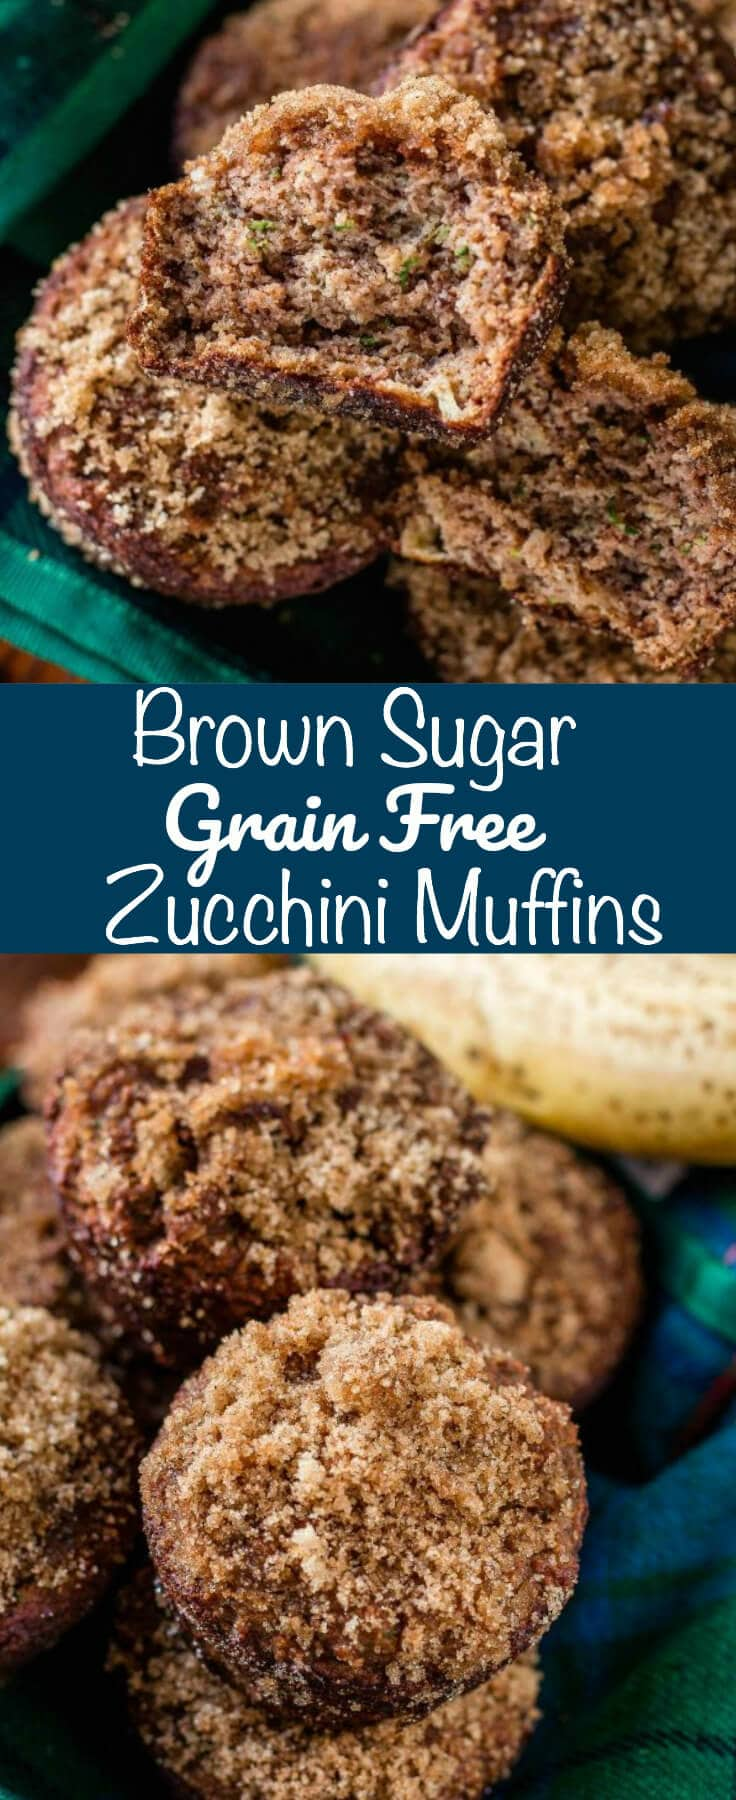 If you're looking for an organic, grain free recipe for breakfast, this is it!! Our Brown Sugar Grain Free Zucchini Muffins are soft, moist, and delicious!